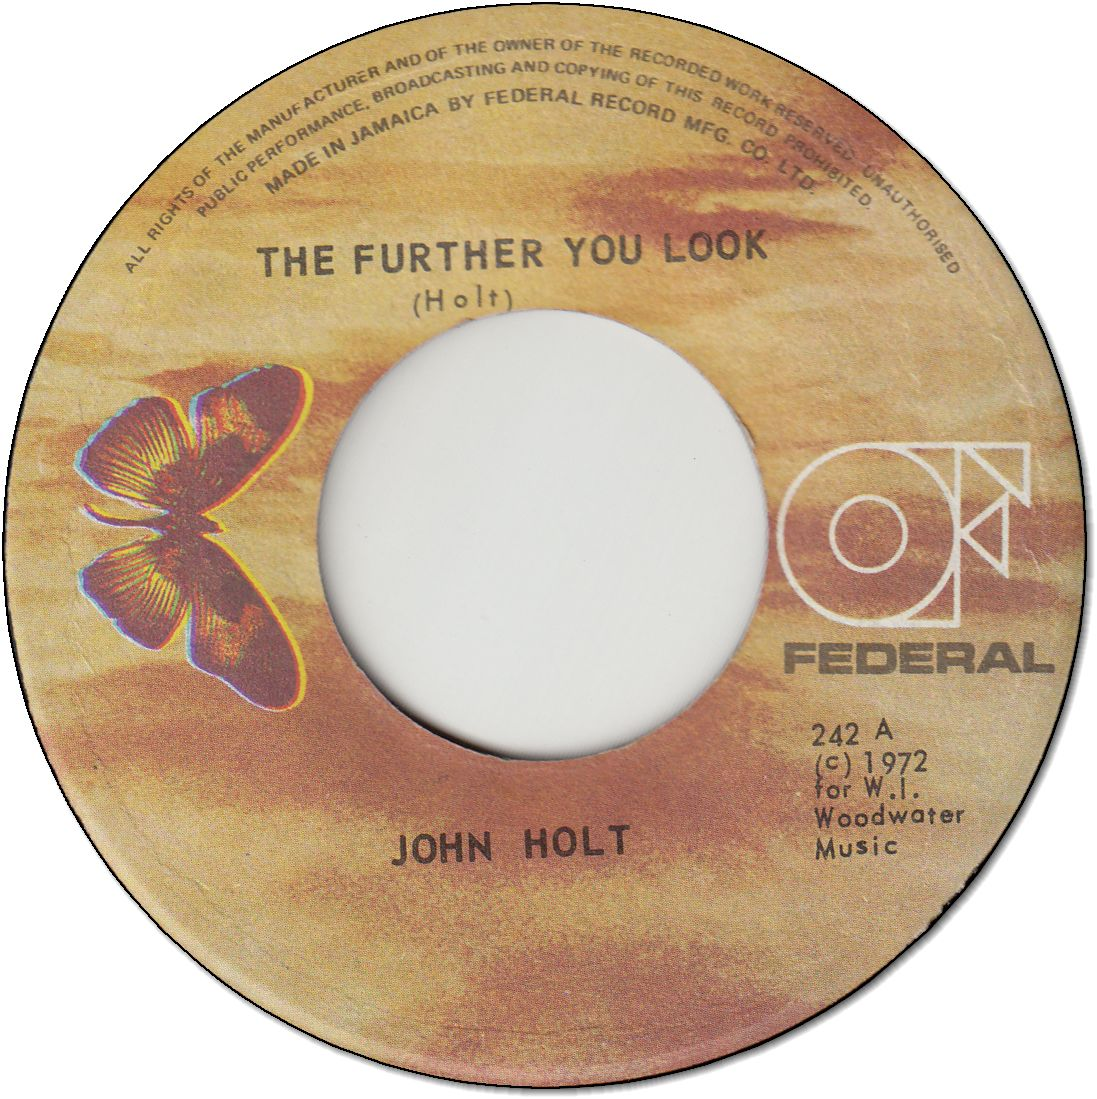 THE FURTHER YOU LOOK (VG+) / I WANNA DANCE